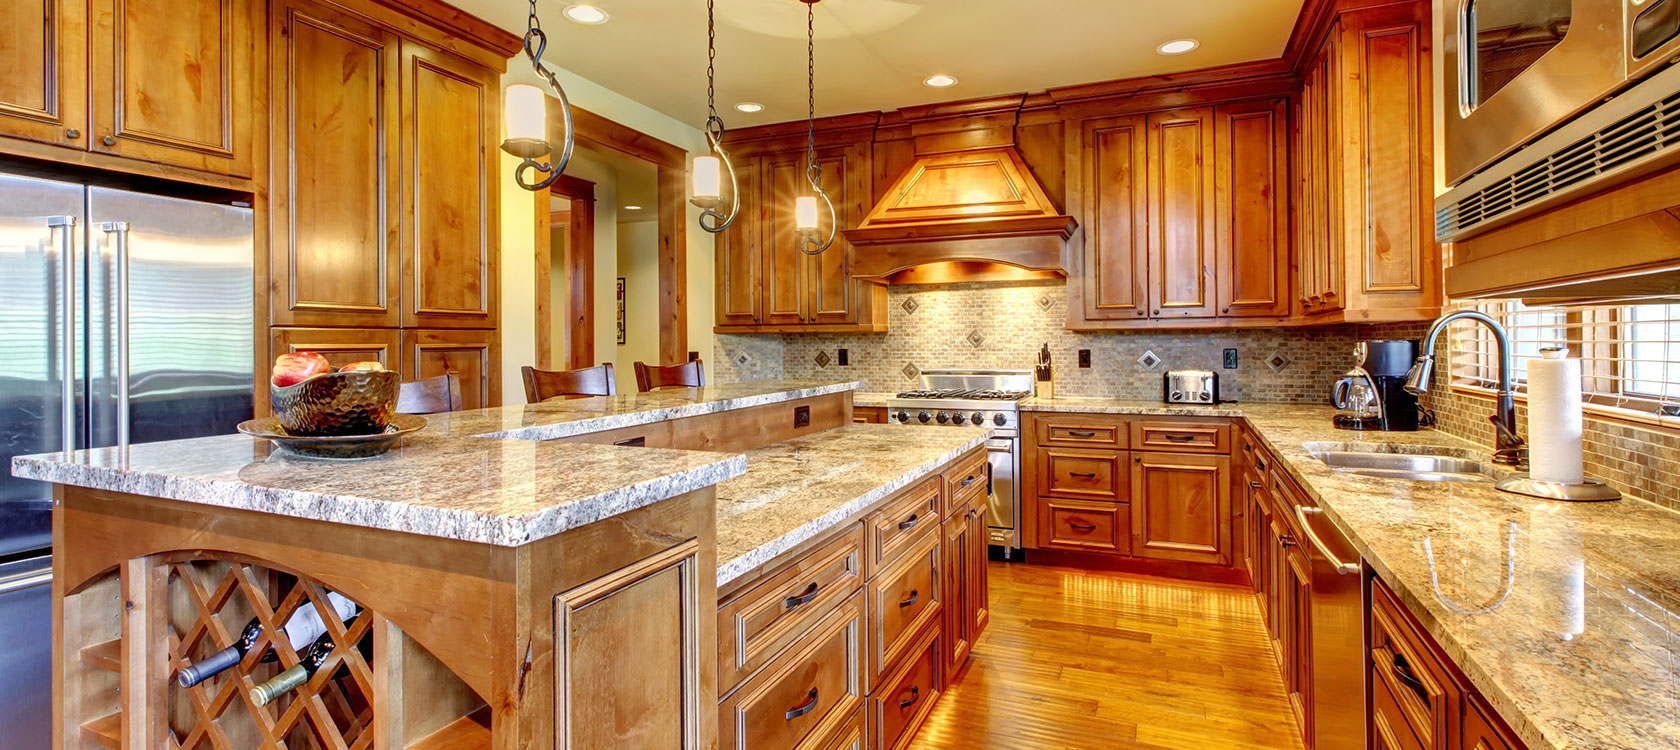 Gentil GRANITE COUNTERTOPS